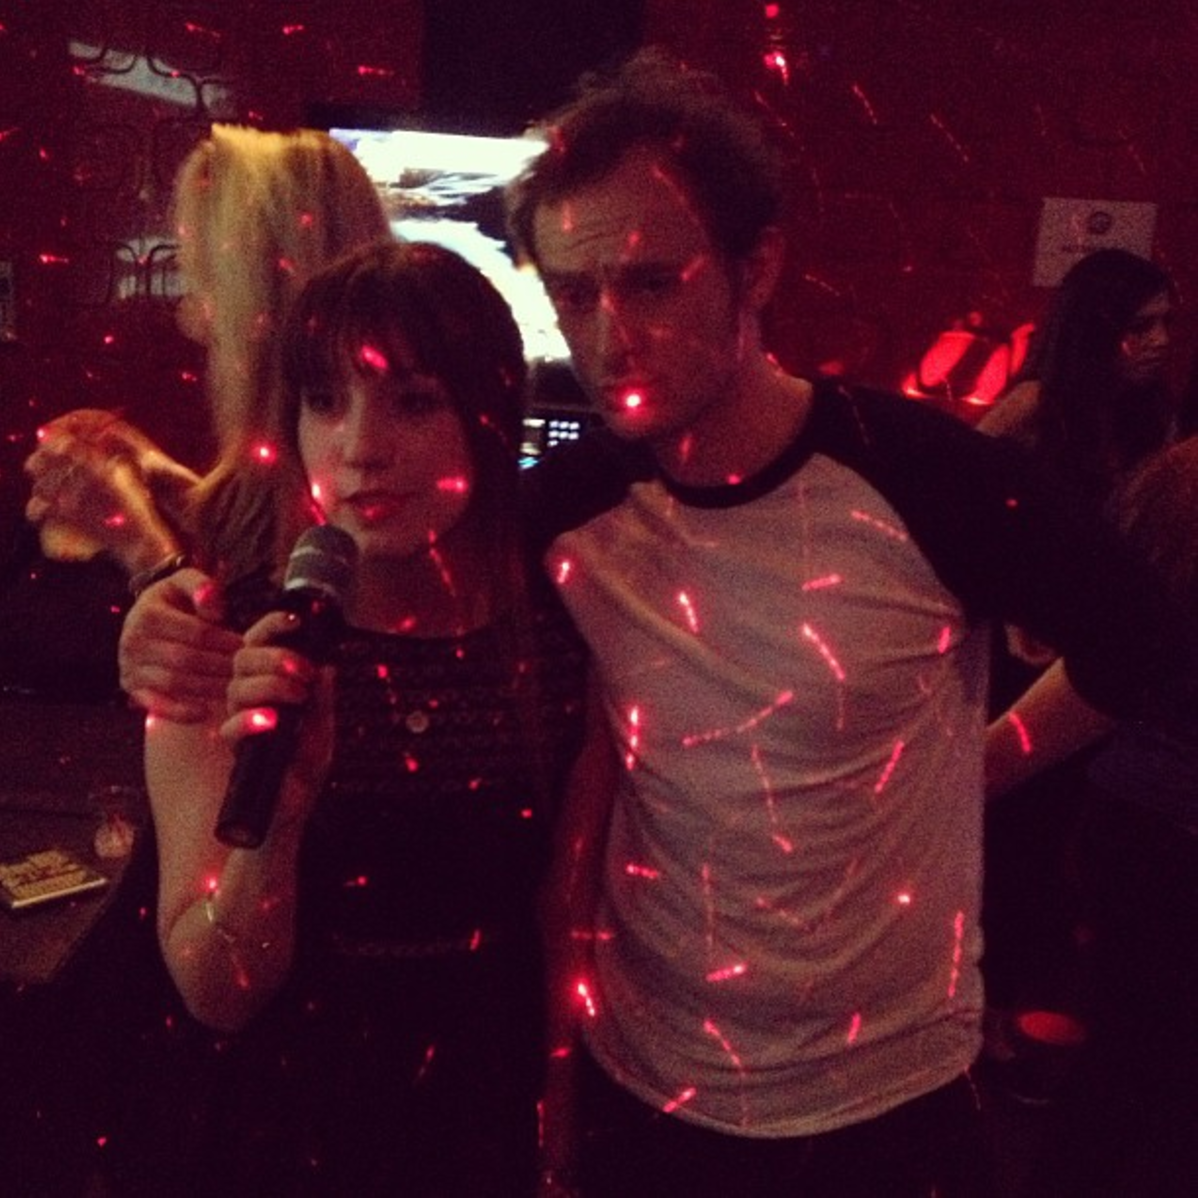 Kim and Christ at Karaoke in the Spring of 2013 (I think it may have been for her birthday)